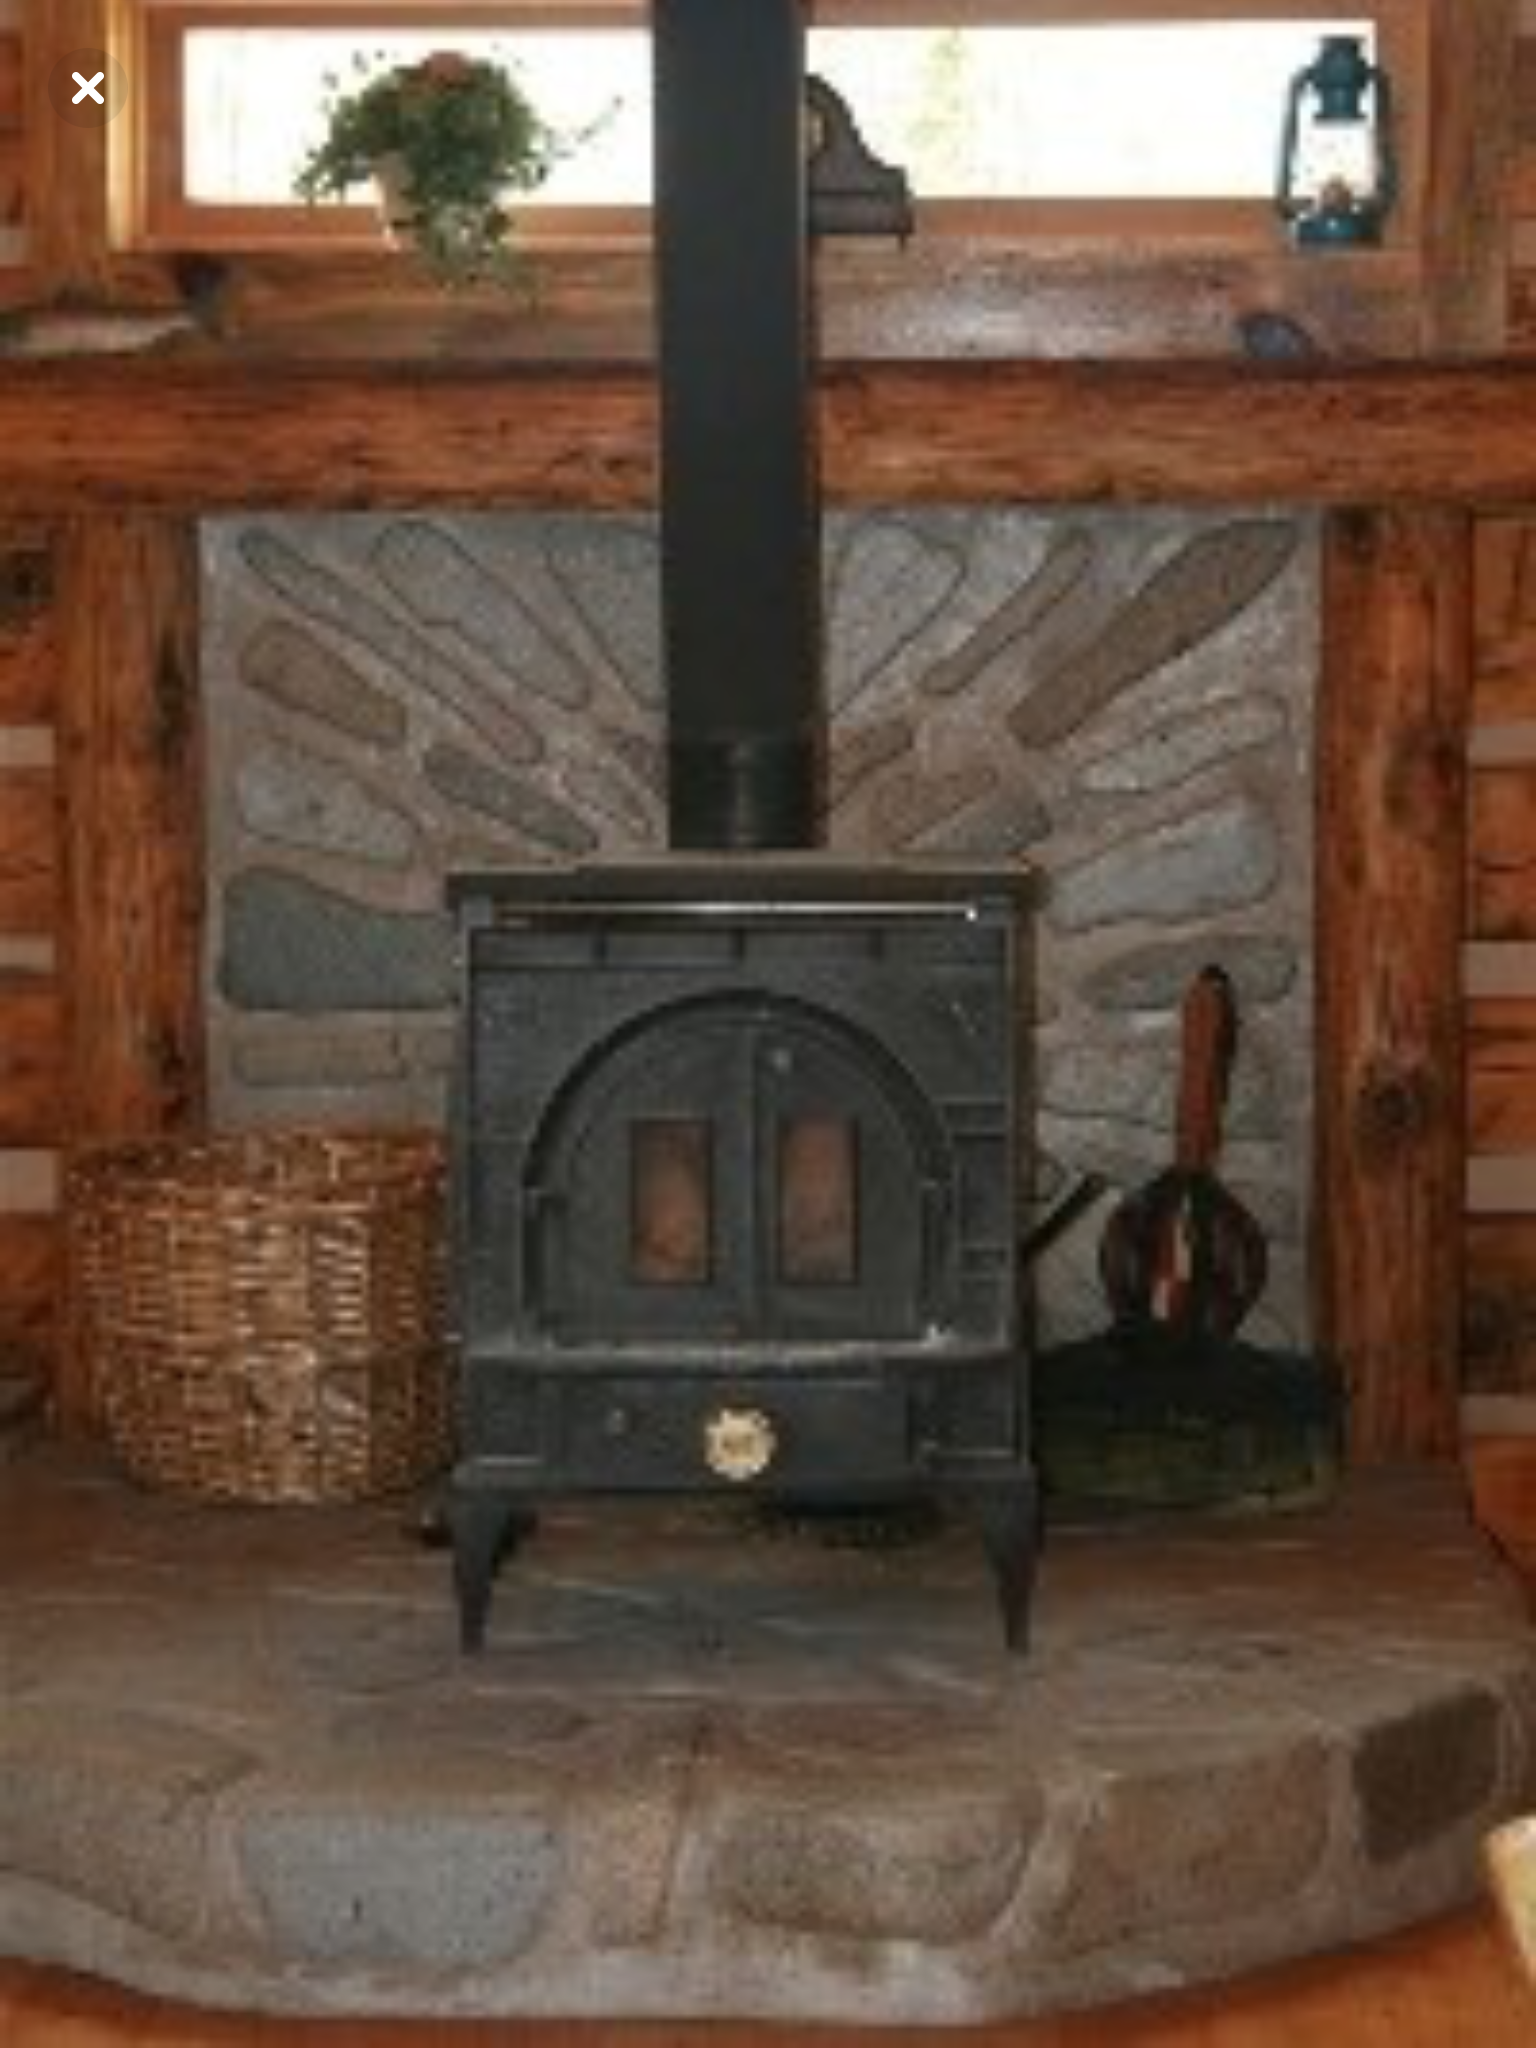 Pin By Debbie Arnold On Fireplaces Wood Burning Stove Decor